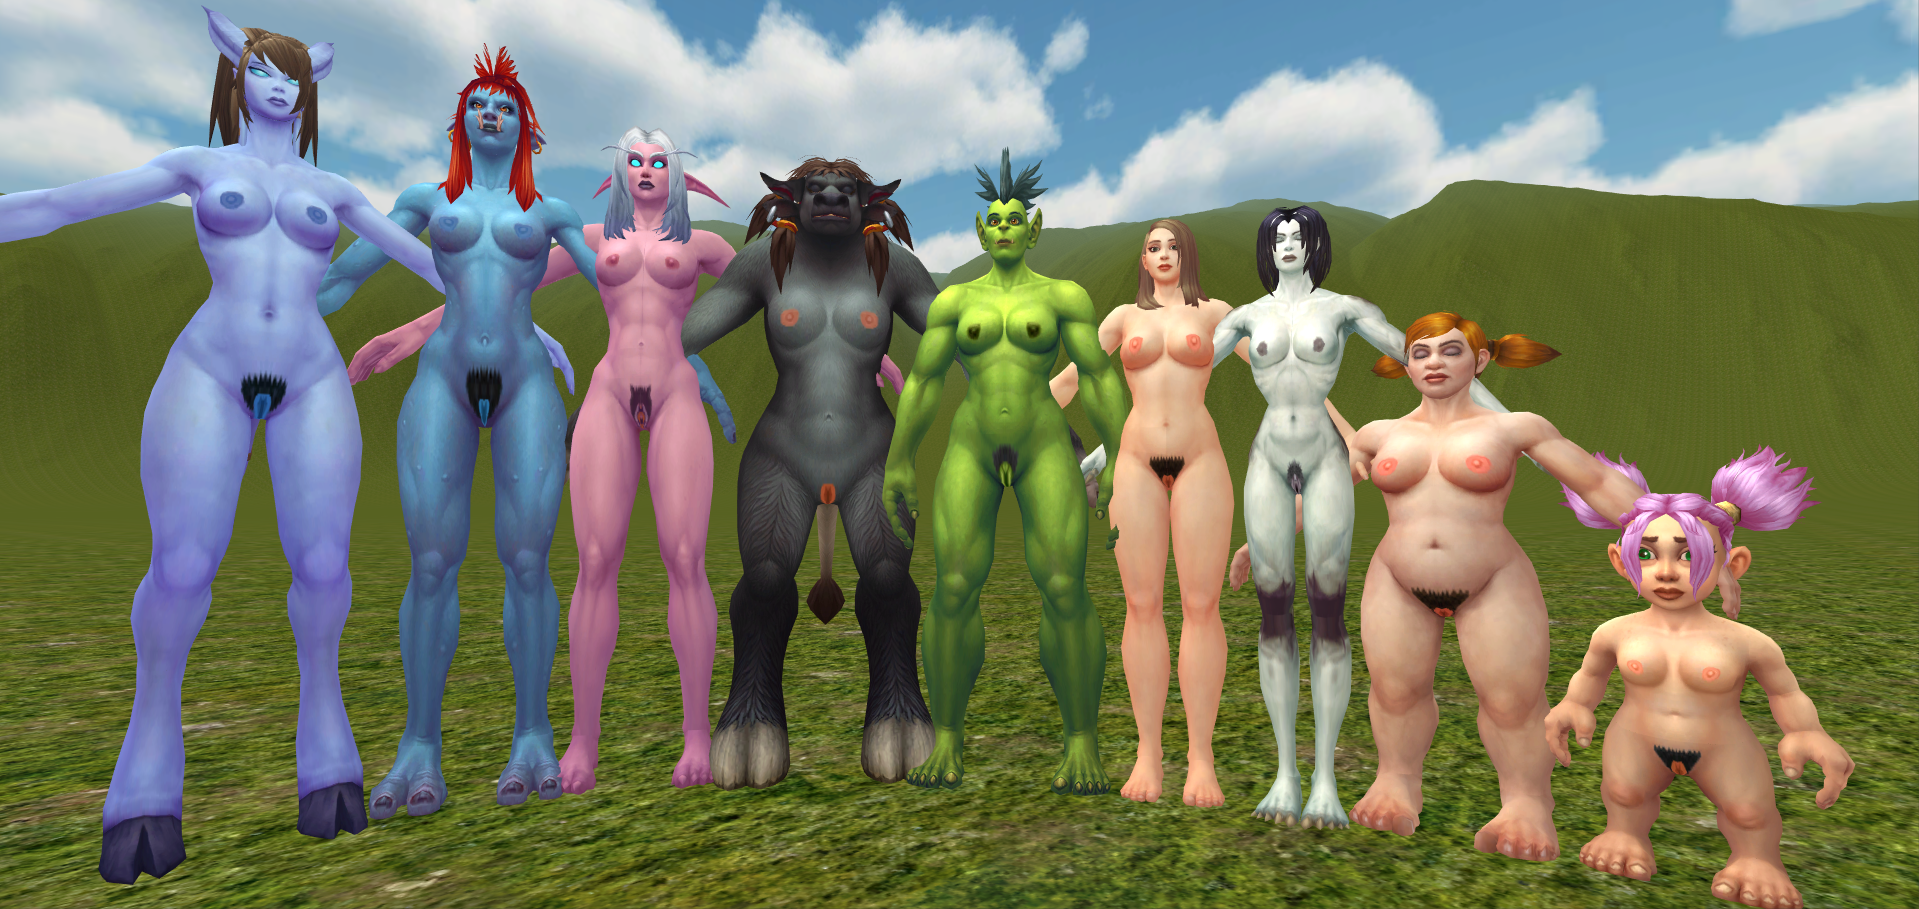 World of warcraft nude mod pics sexy photos